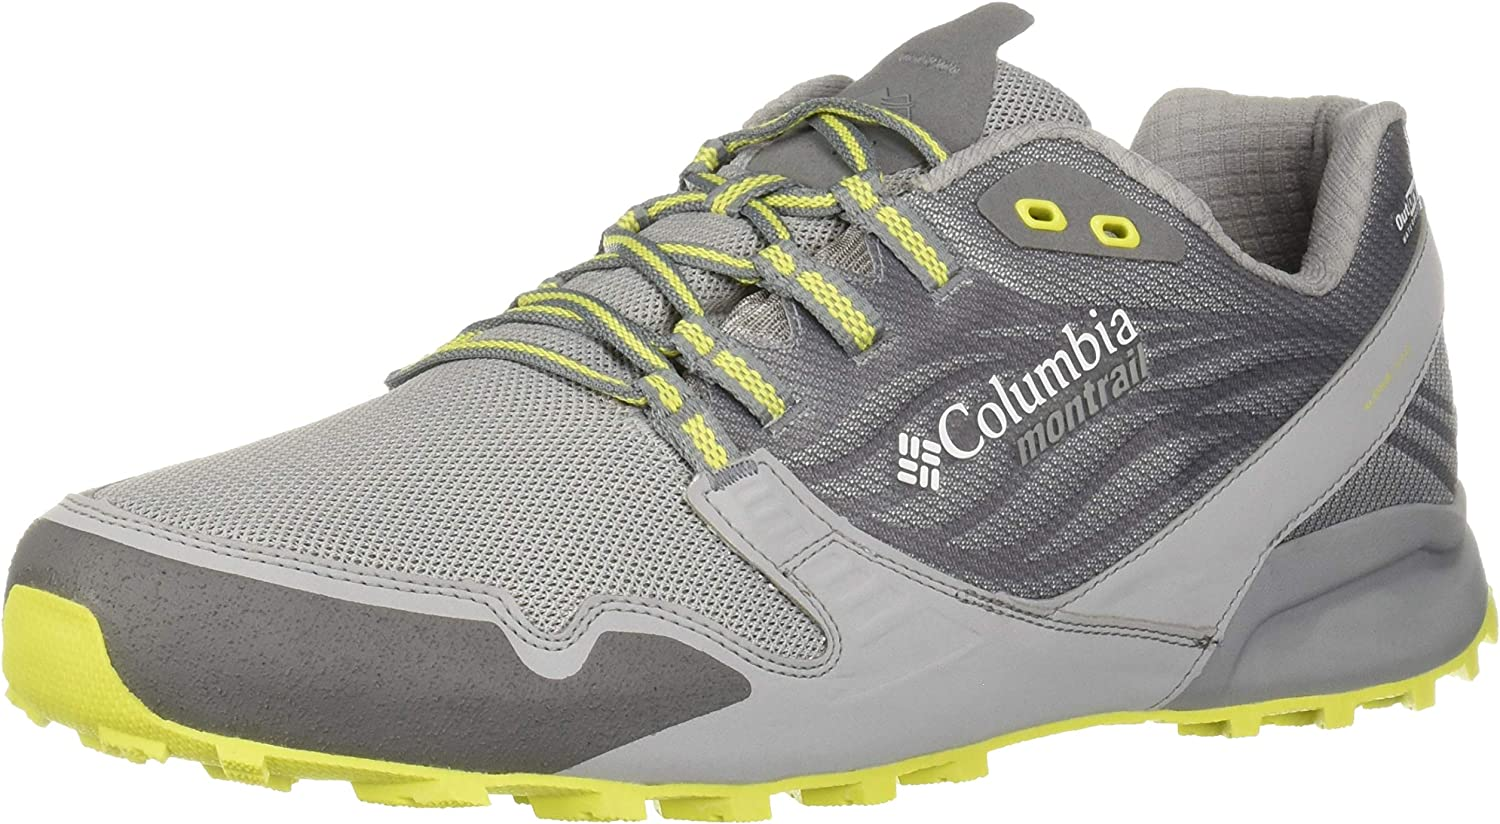 Columbia Men s Alpine Feel the Ground Outdry Trail Running Shoe, Waterproof Breathable